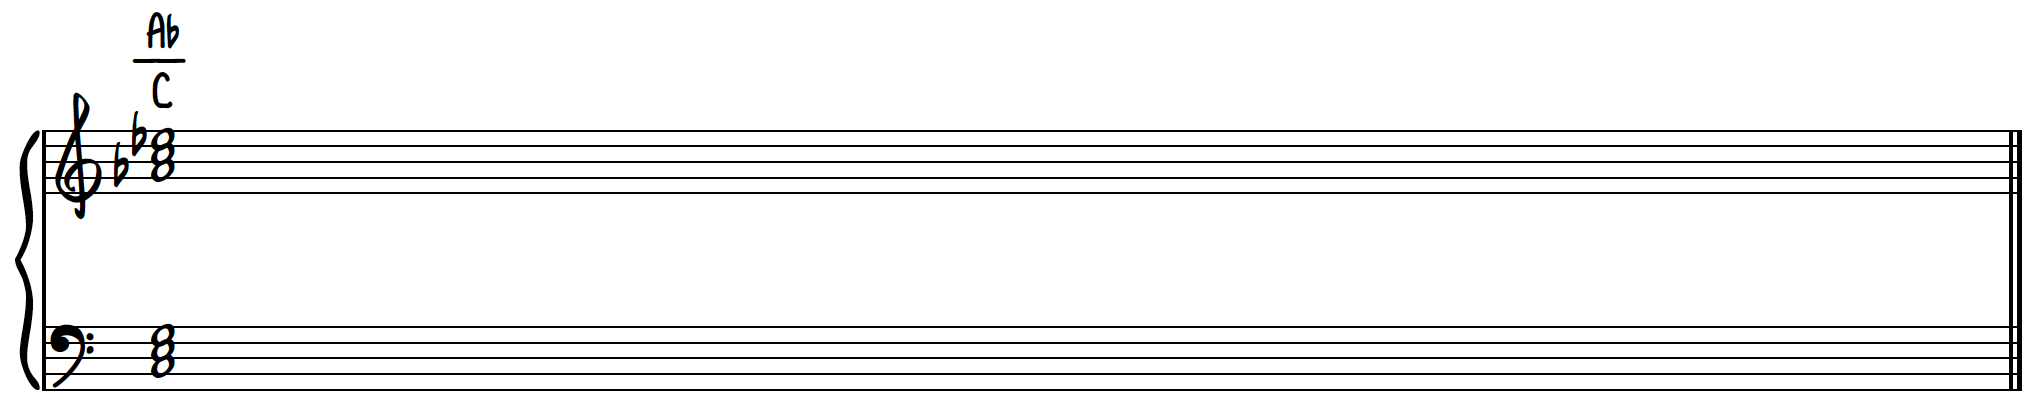 Dissonant Chord 1 - Ab major over C major poly chord on piano